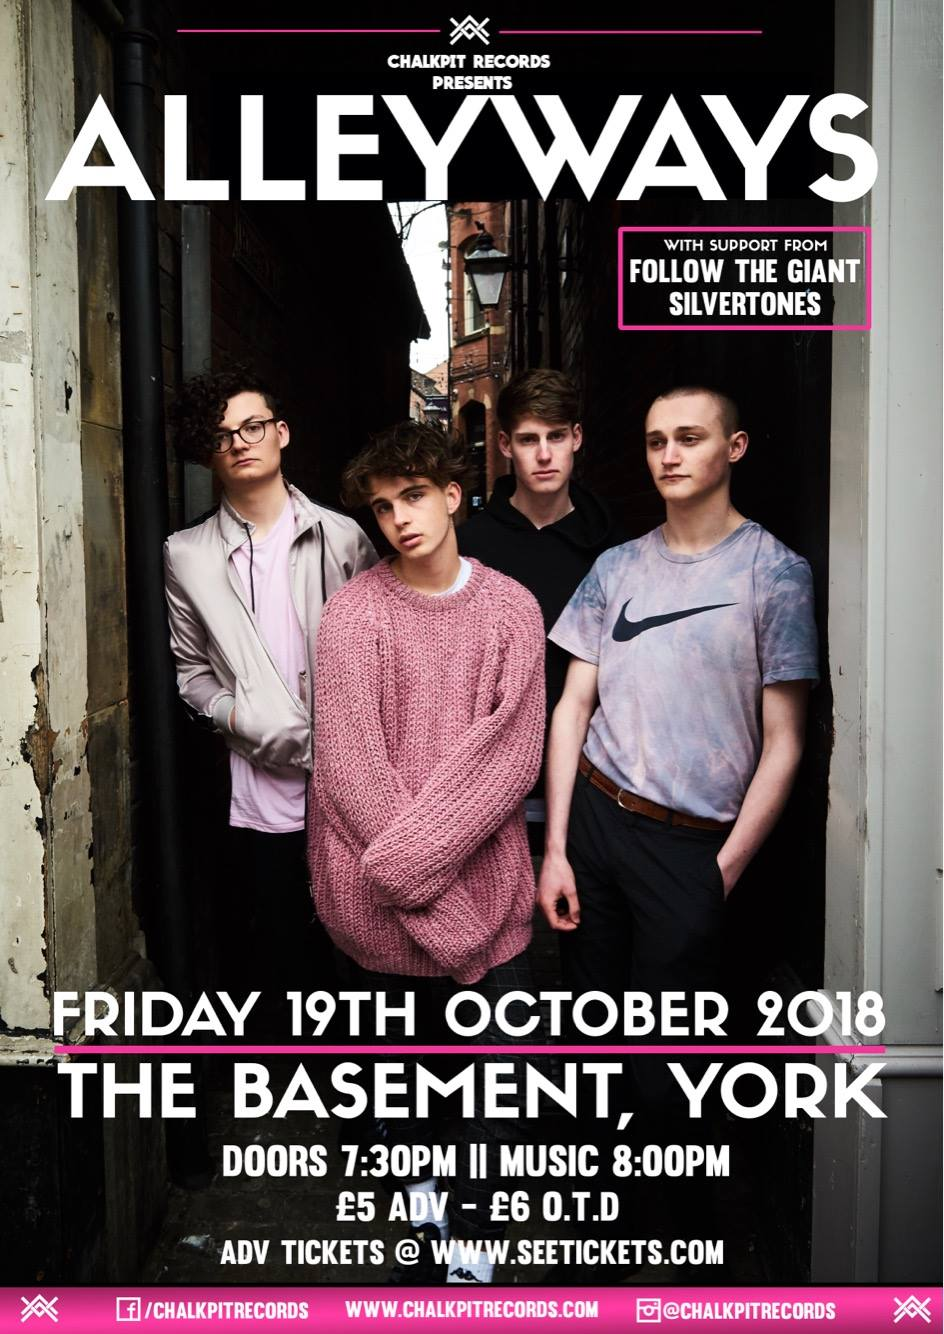 Alleyways Live at The Basement, York